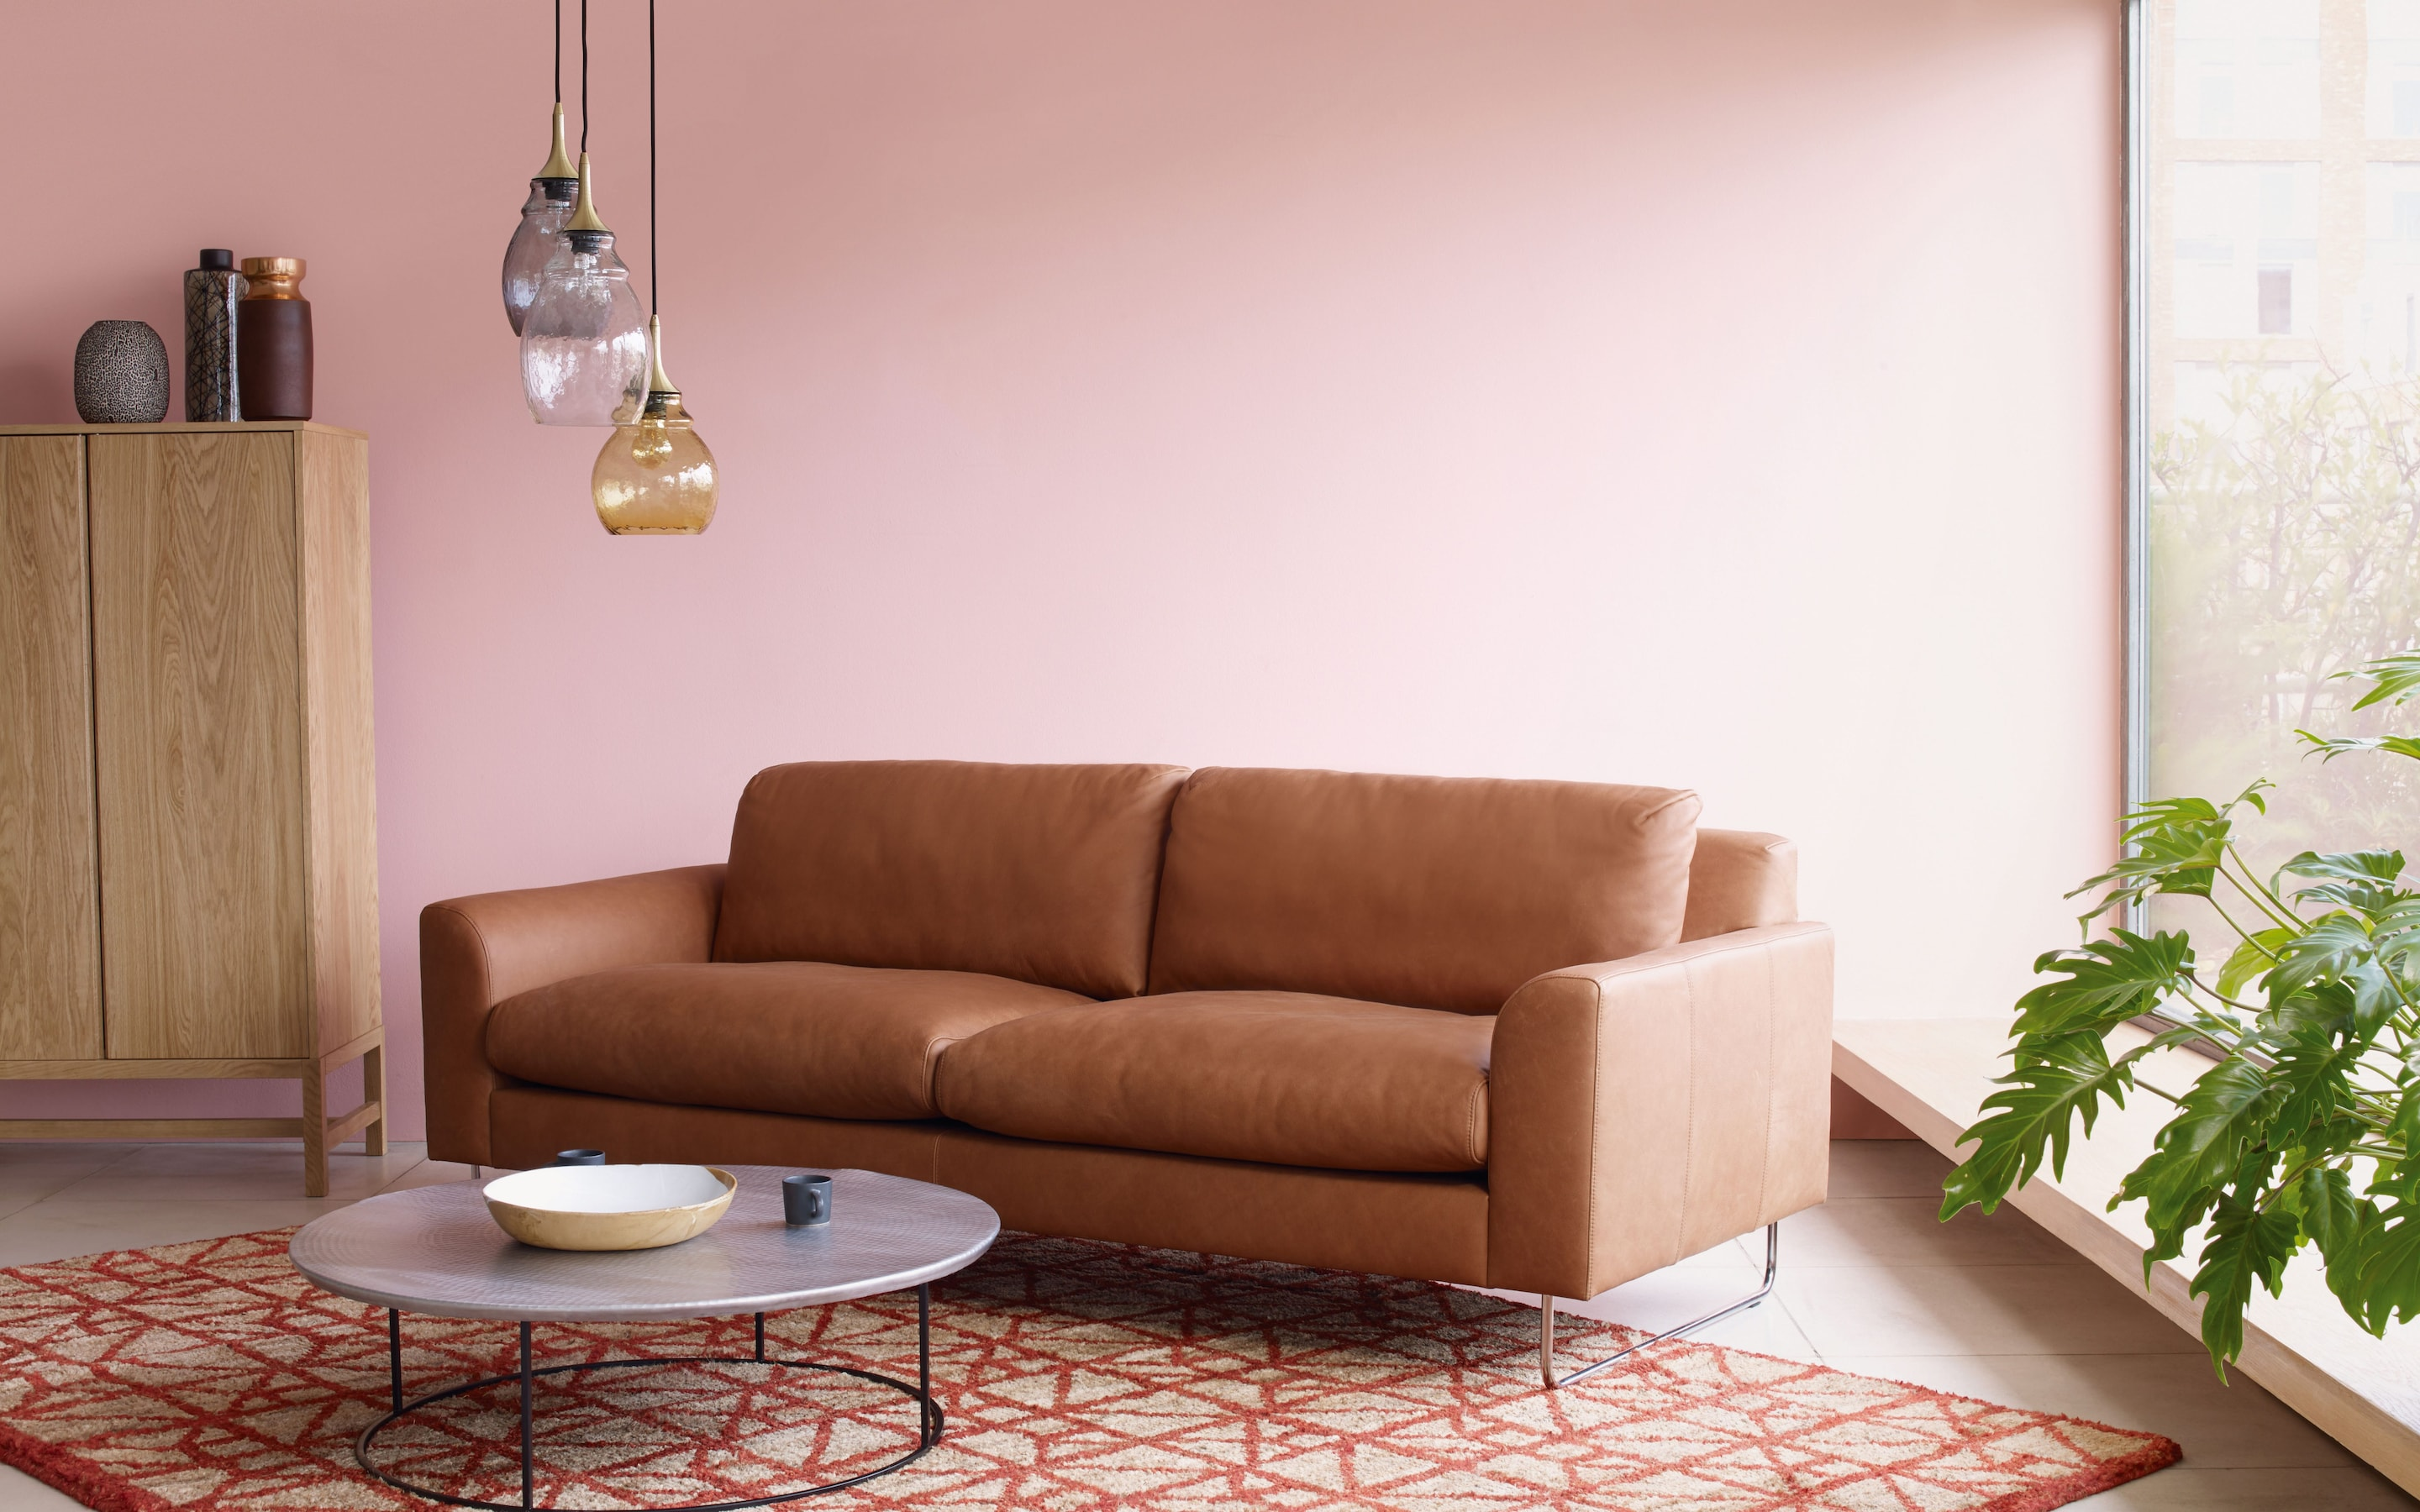 how to re plump leather sofa cushions design sofabord rundt 17 of the best sofas and couches buy for all budgets